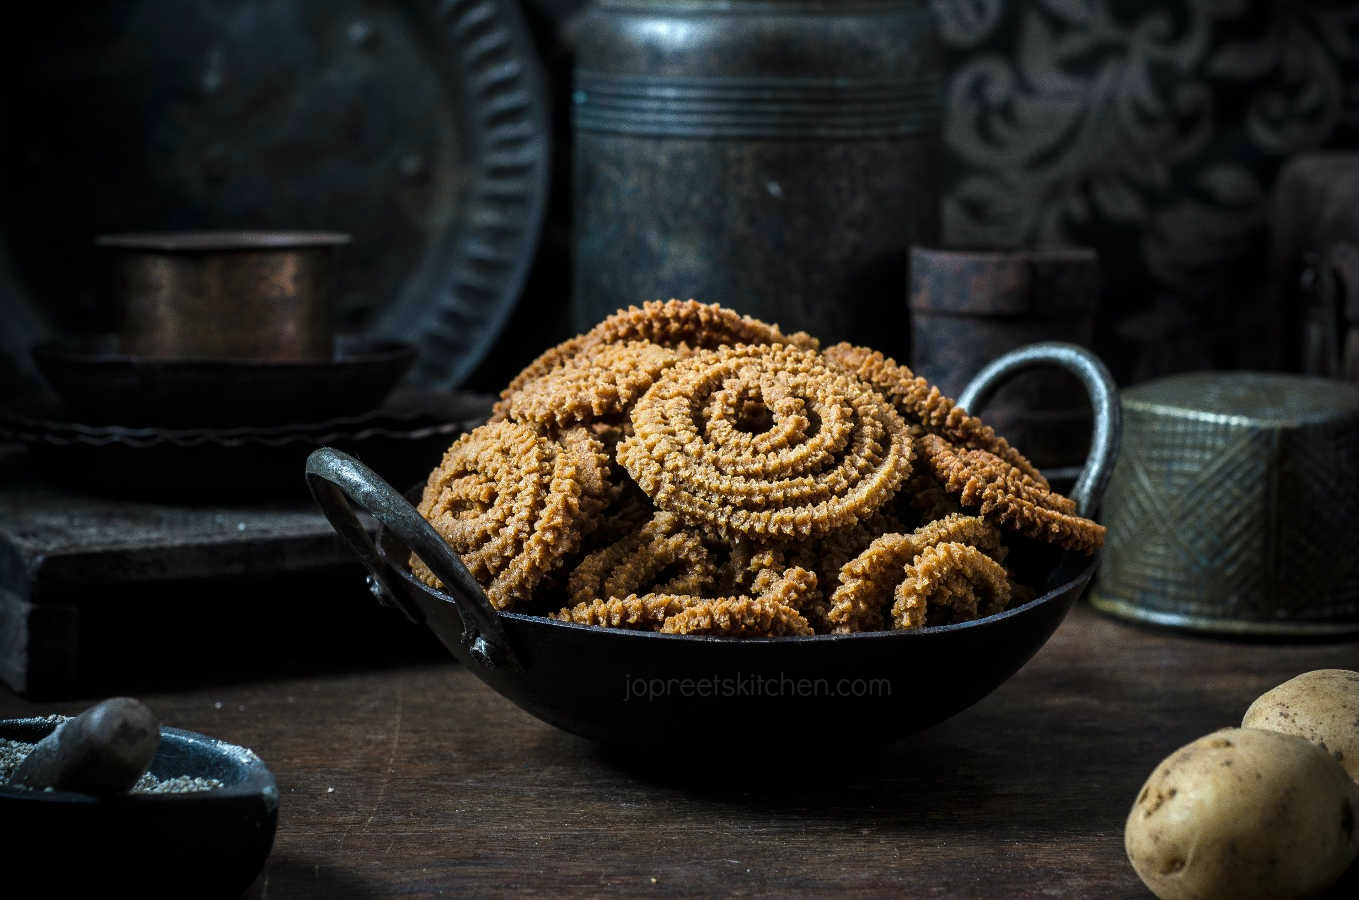 Potato kambu murukku jopreetskitchen for Awesome cuisine authors mallika badrinath